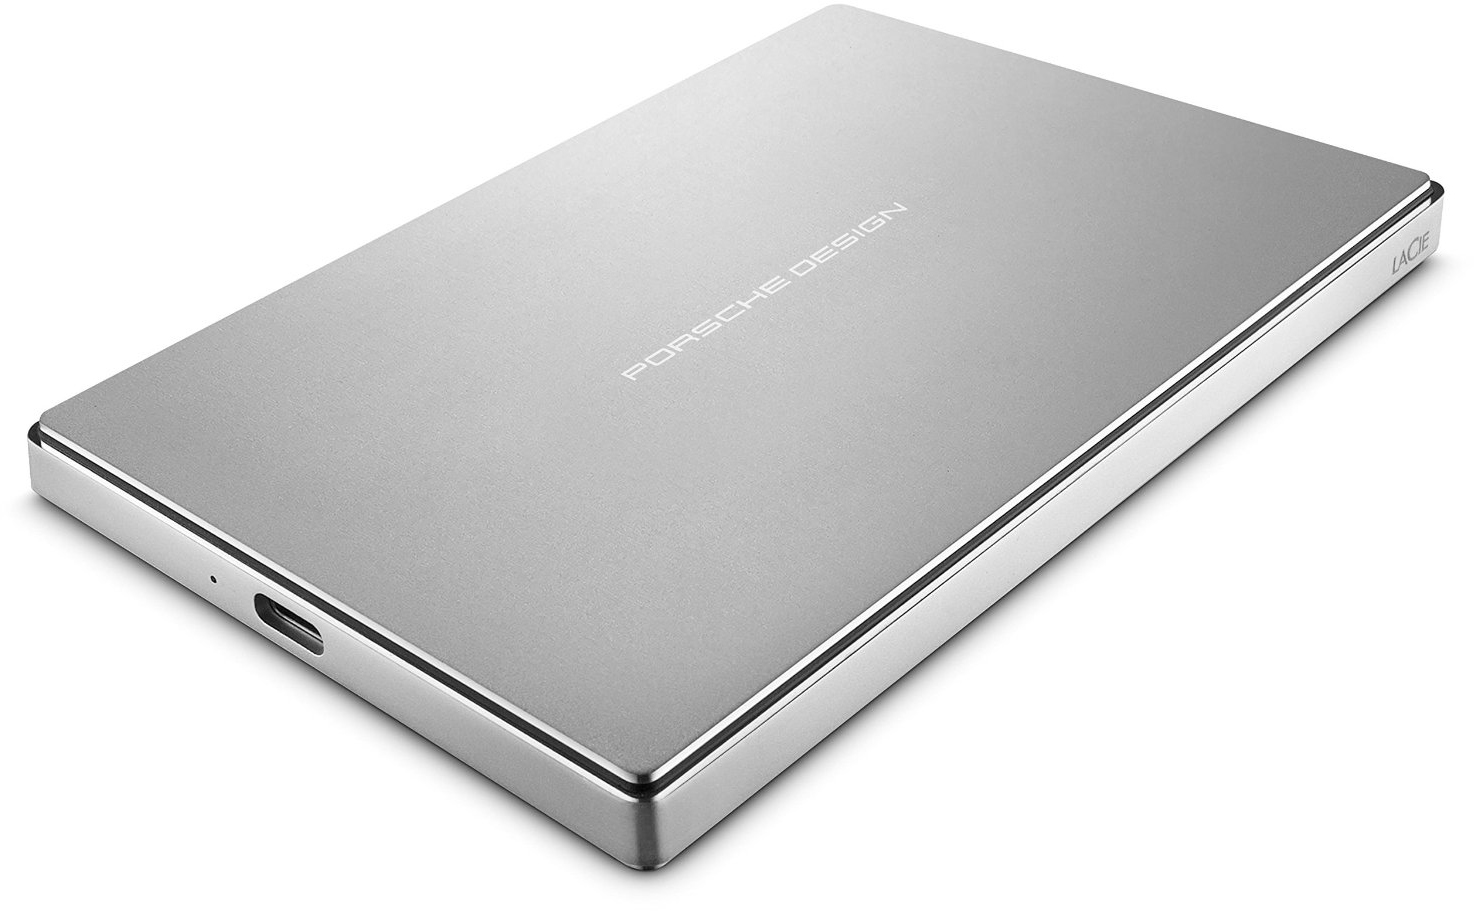 Top 5 external hard drives with USB-C for a new MacBook